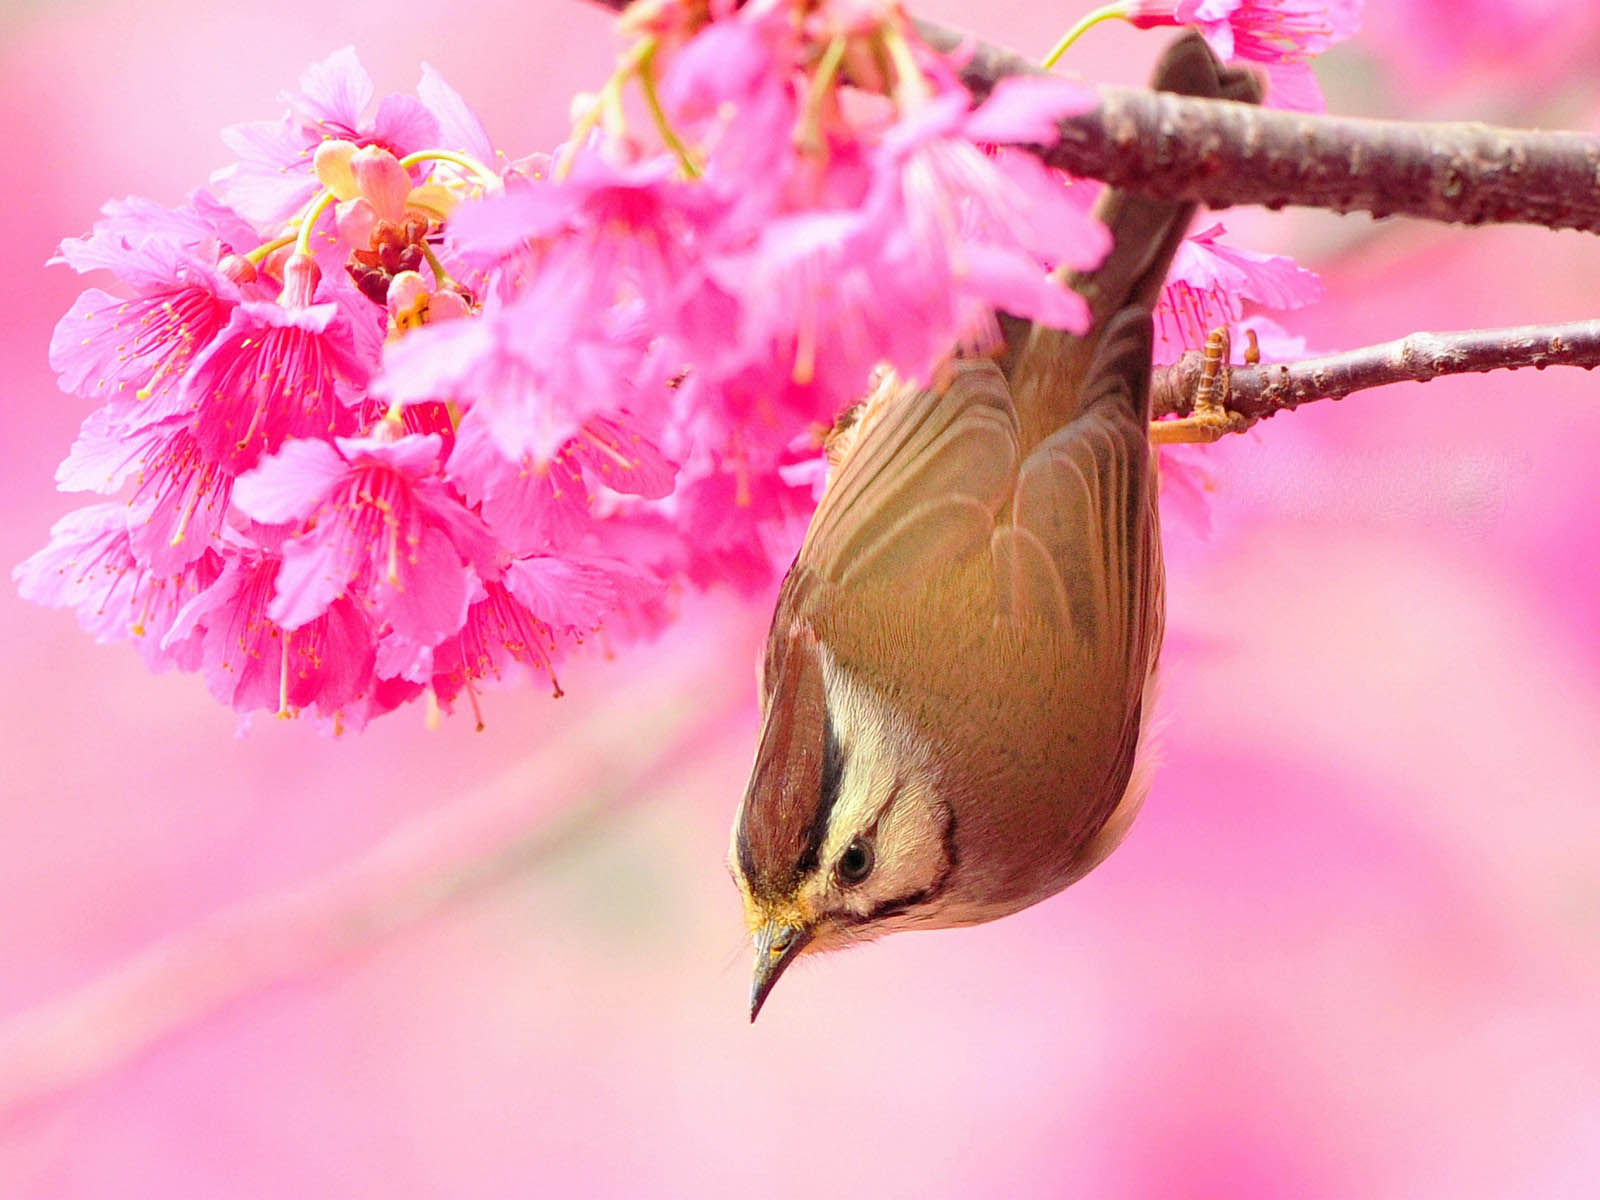 download bird and flower wallpaper which is under the birds wallpapers 1600x1200